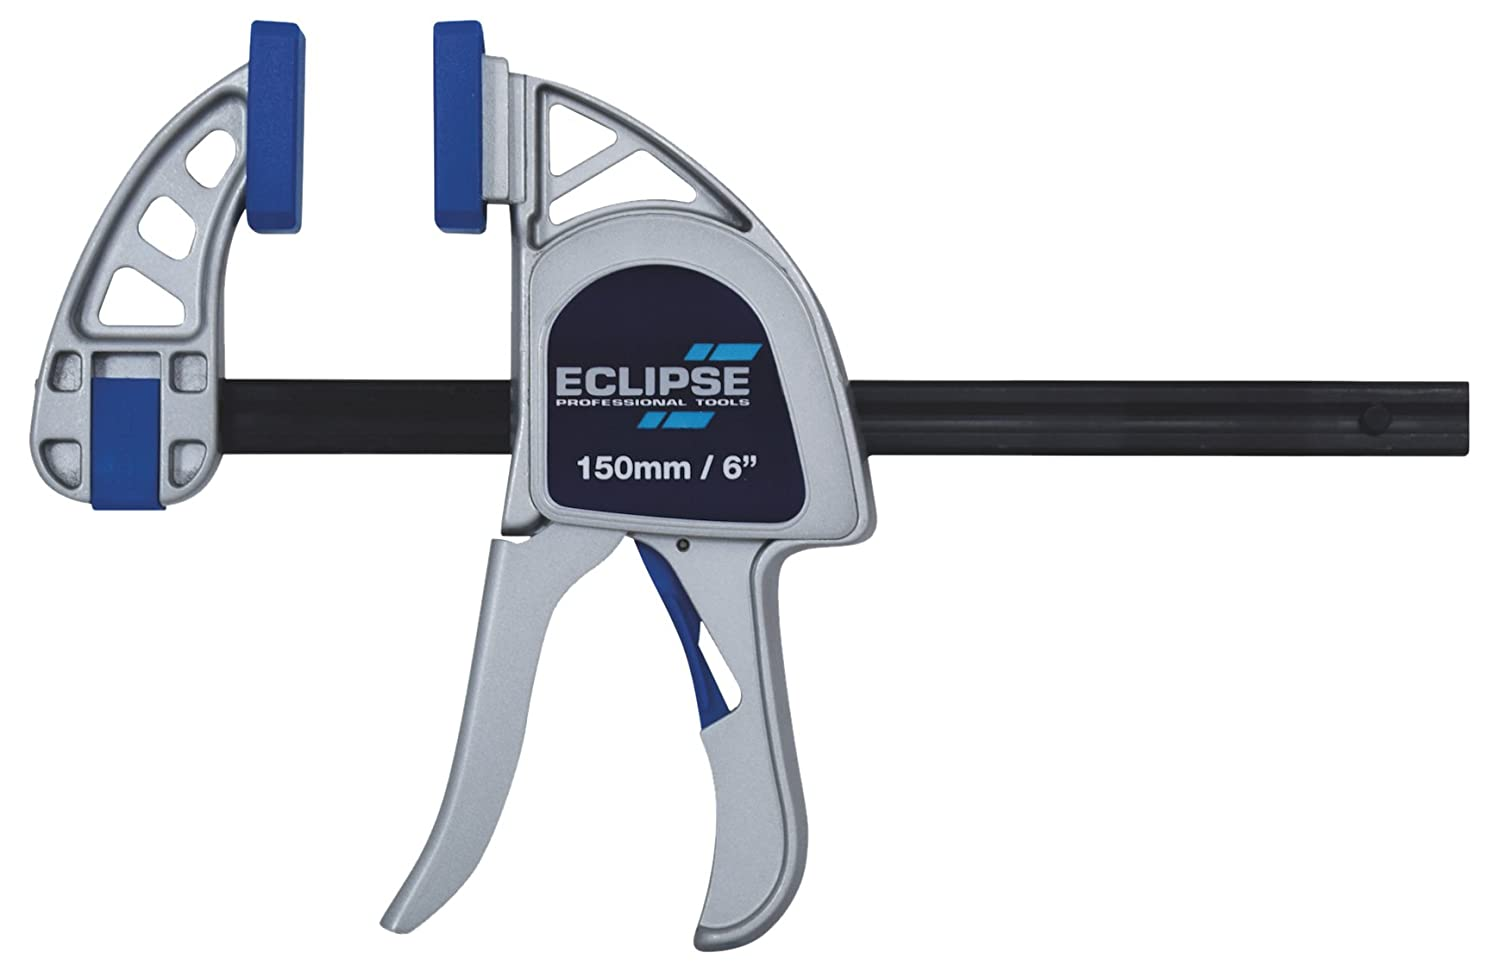 Eclipse Tools EOHBC6-HD Heavy Duty One Handed Bar Clamp, Blue/Silver/Black, 6-Inch